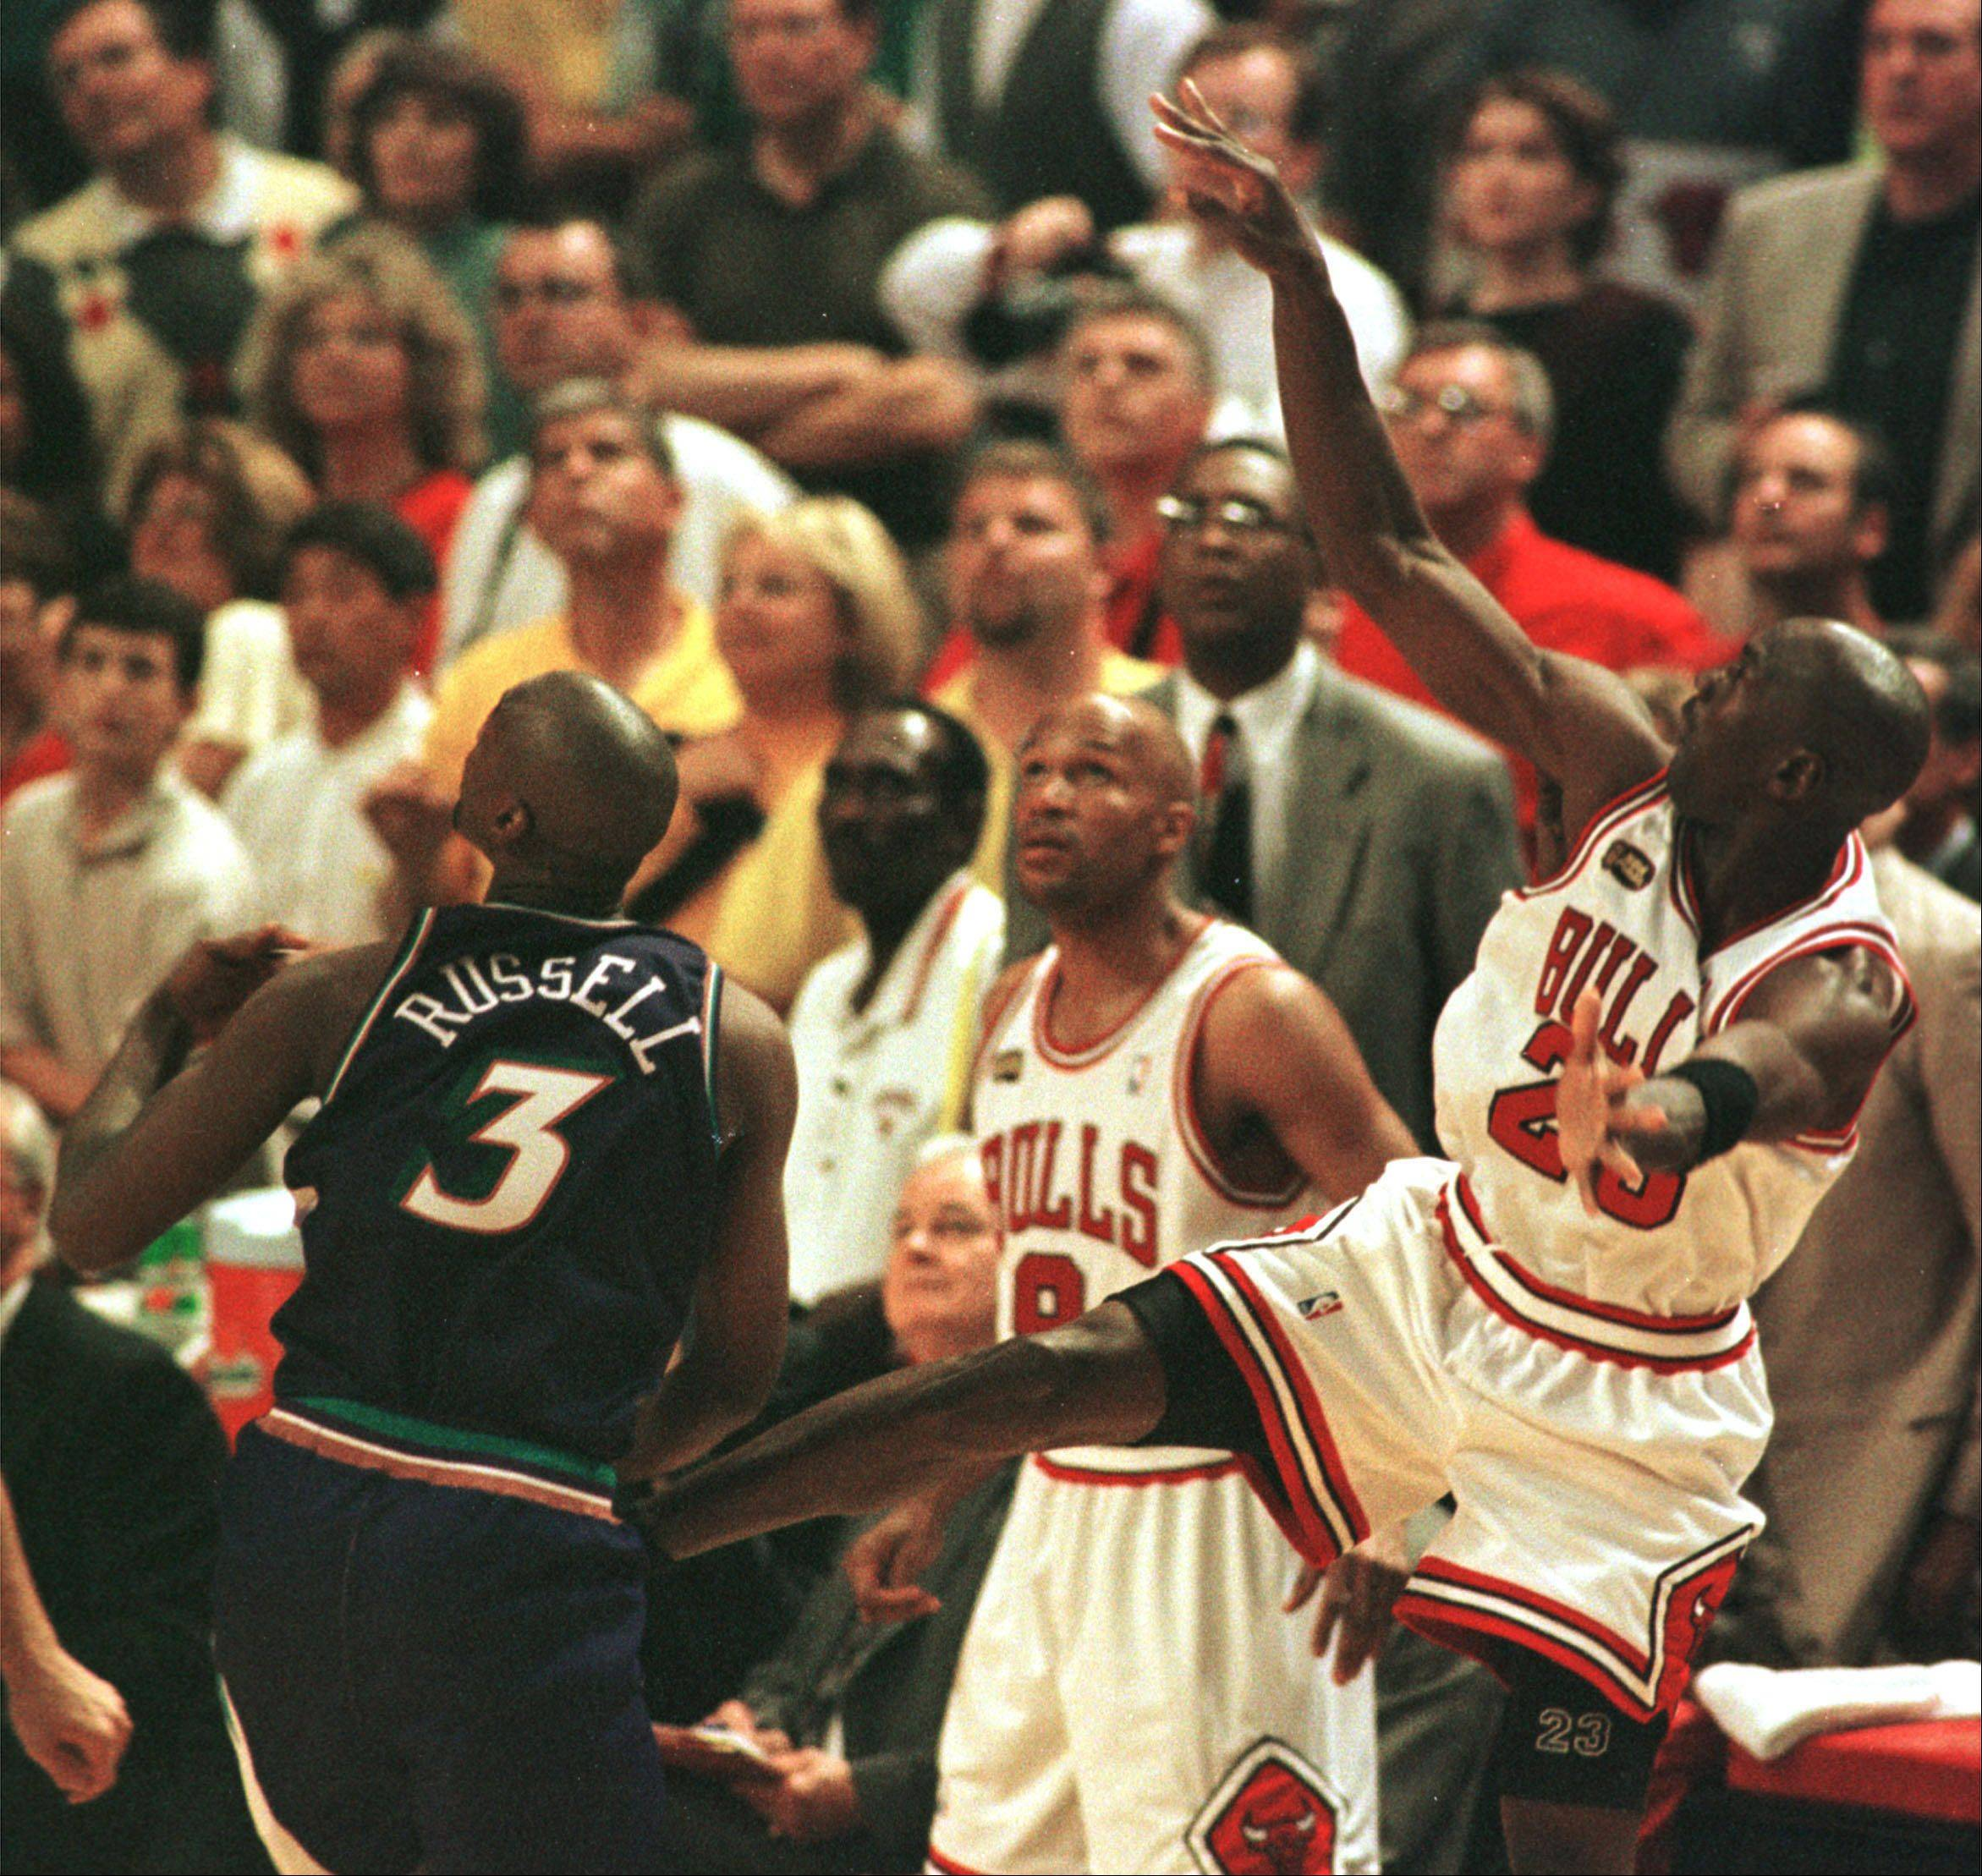 Chicago Bulls Michael Jordan takes the last shot to win the game with 1.1 seconds on the clock against the Utah Jazz and the sixth NBA Championship in 1994.